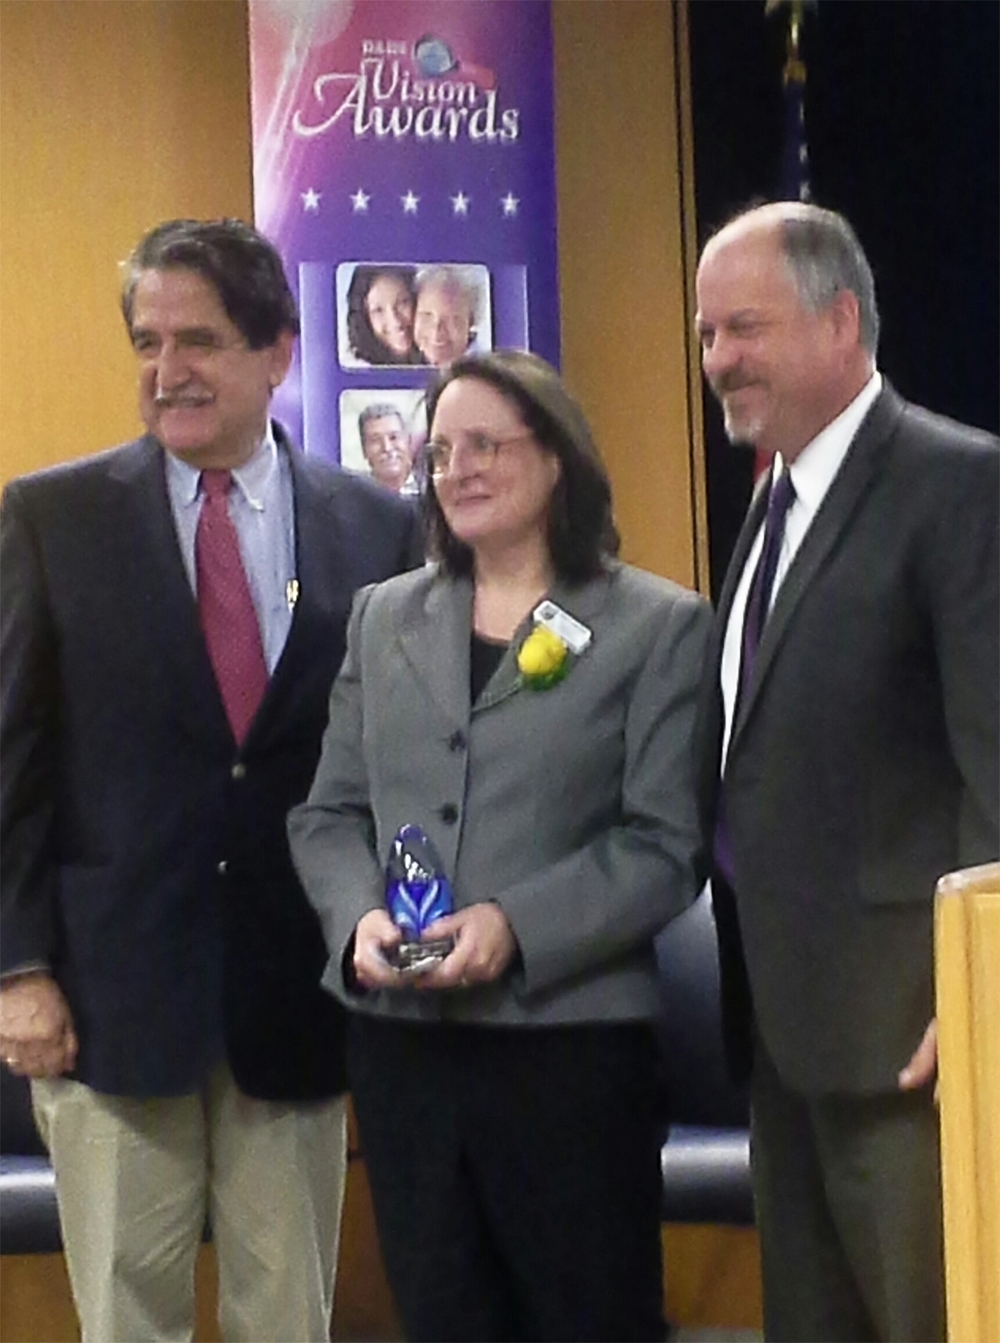 September, 2015Robin LeoGrande accepts the Texas Department of Aging and Disability Services Vision award in the category of Choices FromJohn J. Cueller (Left) Chairman of the Texas Aging and Disability Services Council, and Jon Weizenbaum Commissioner for the Texas Department of Aging and Disability Services (DADS)